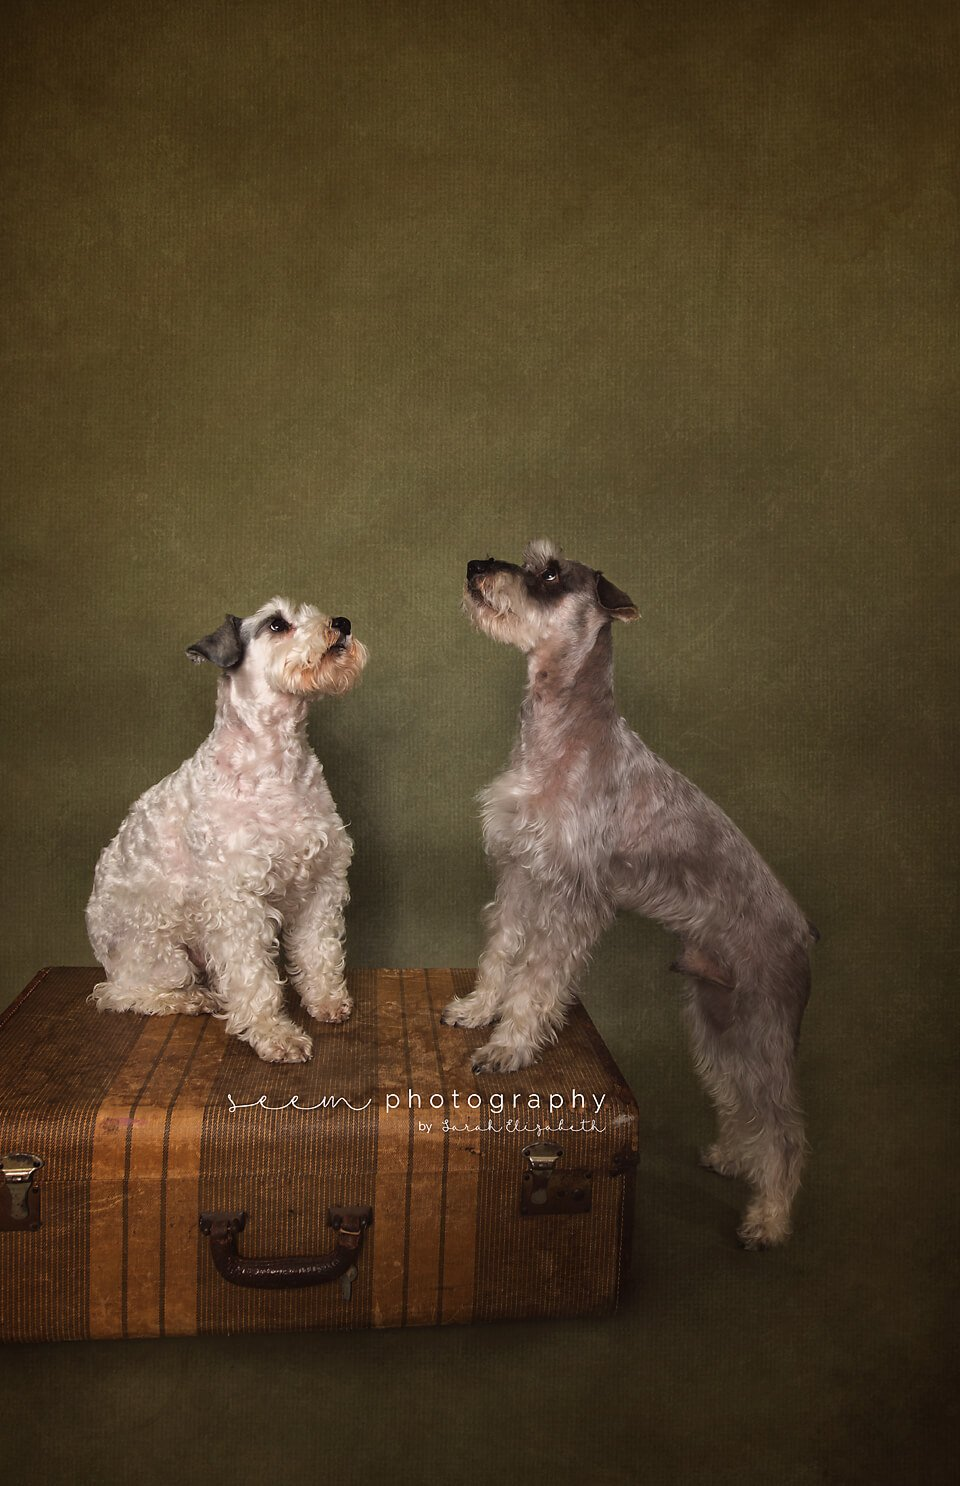 SEEM photography Dogs Fine Art